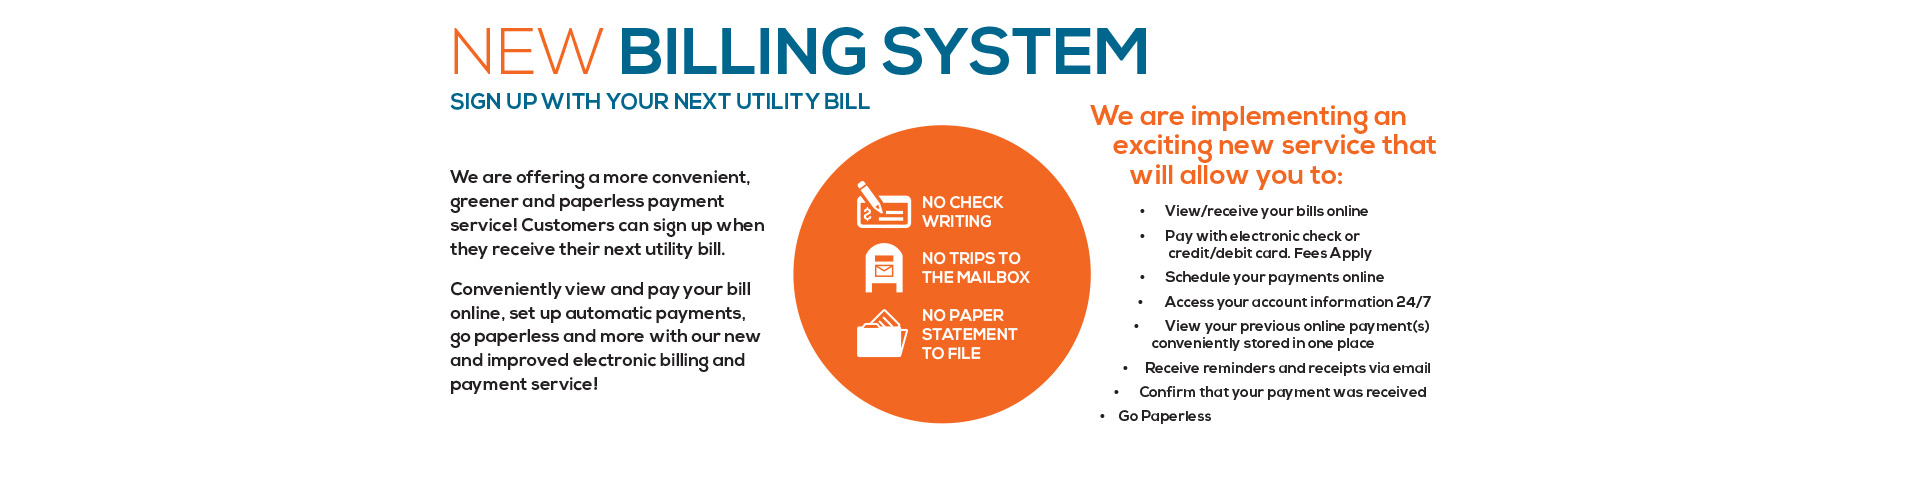 new billing system homepage banner